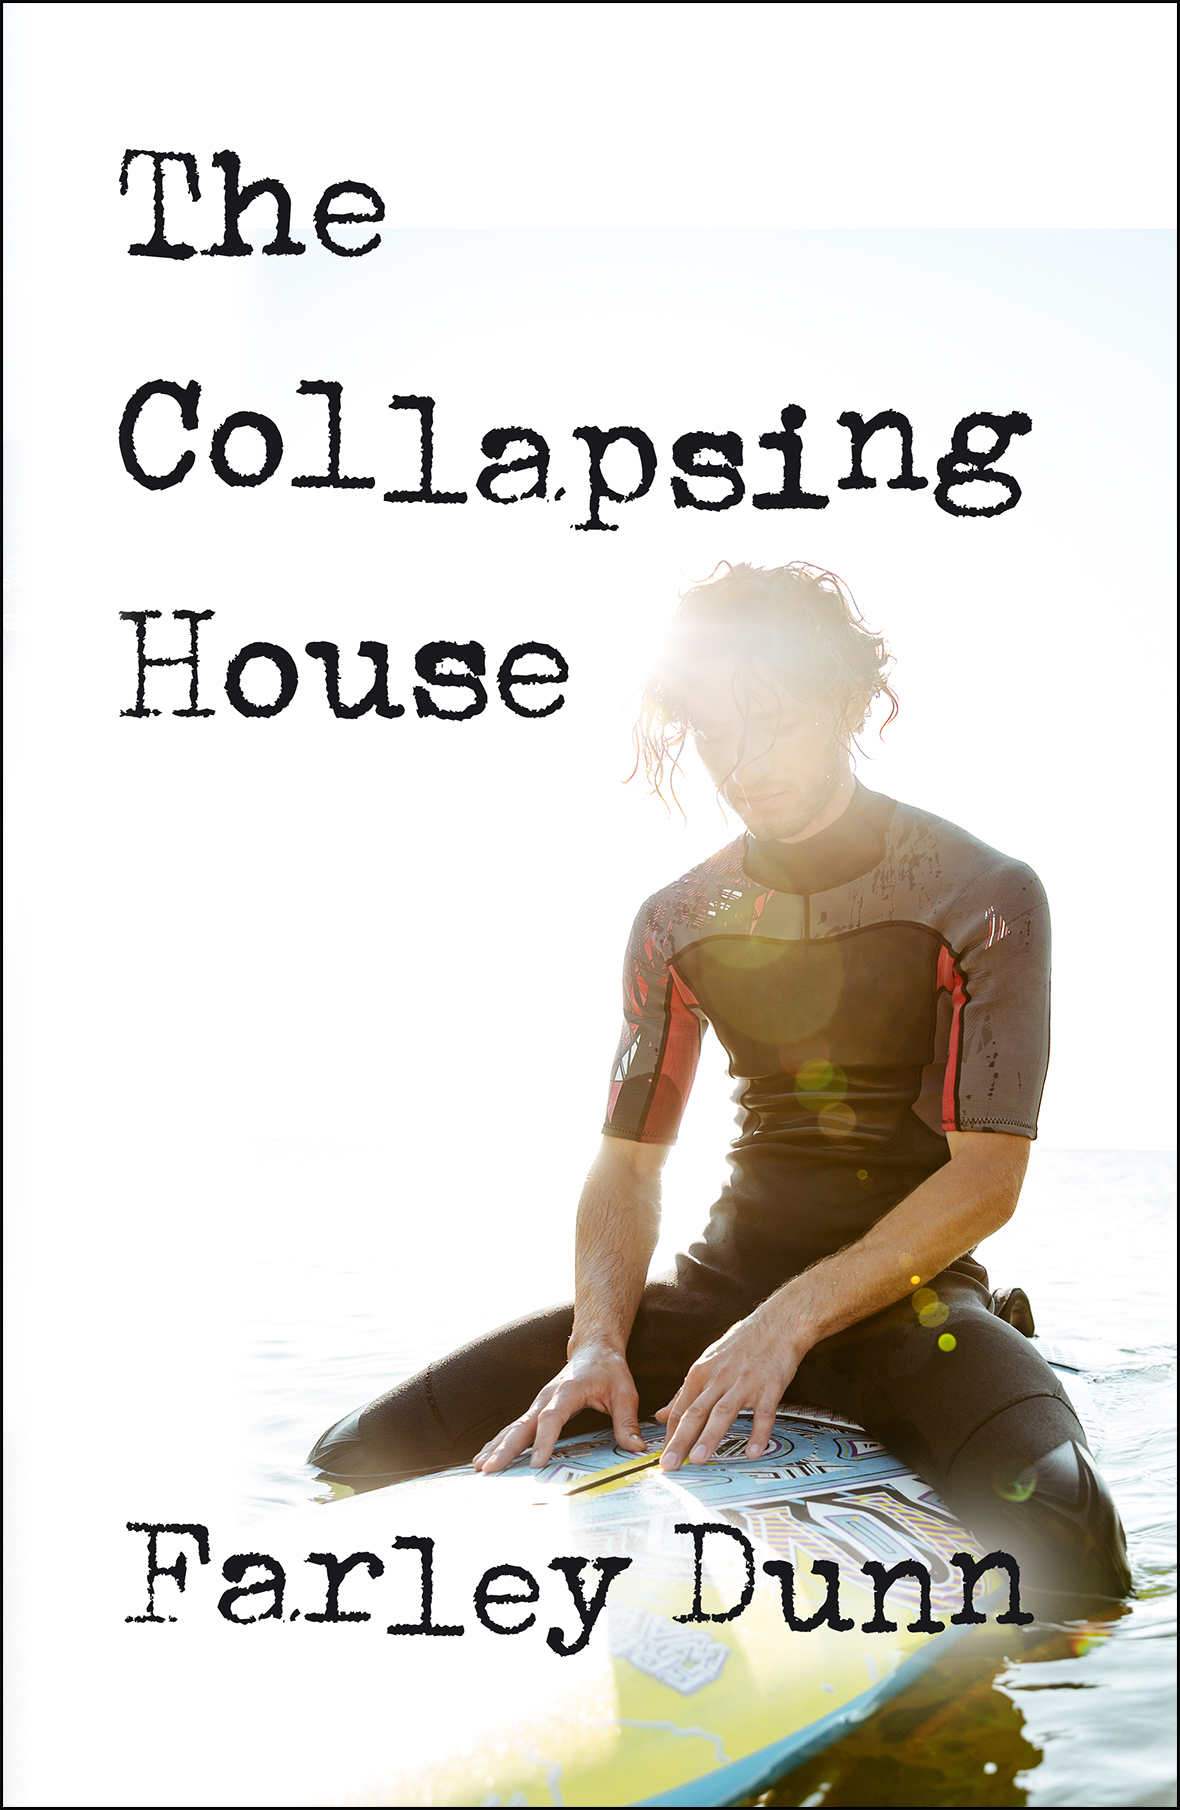 The Collapsing House Front Cover v6 for web insertion